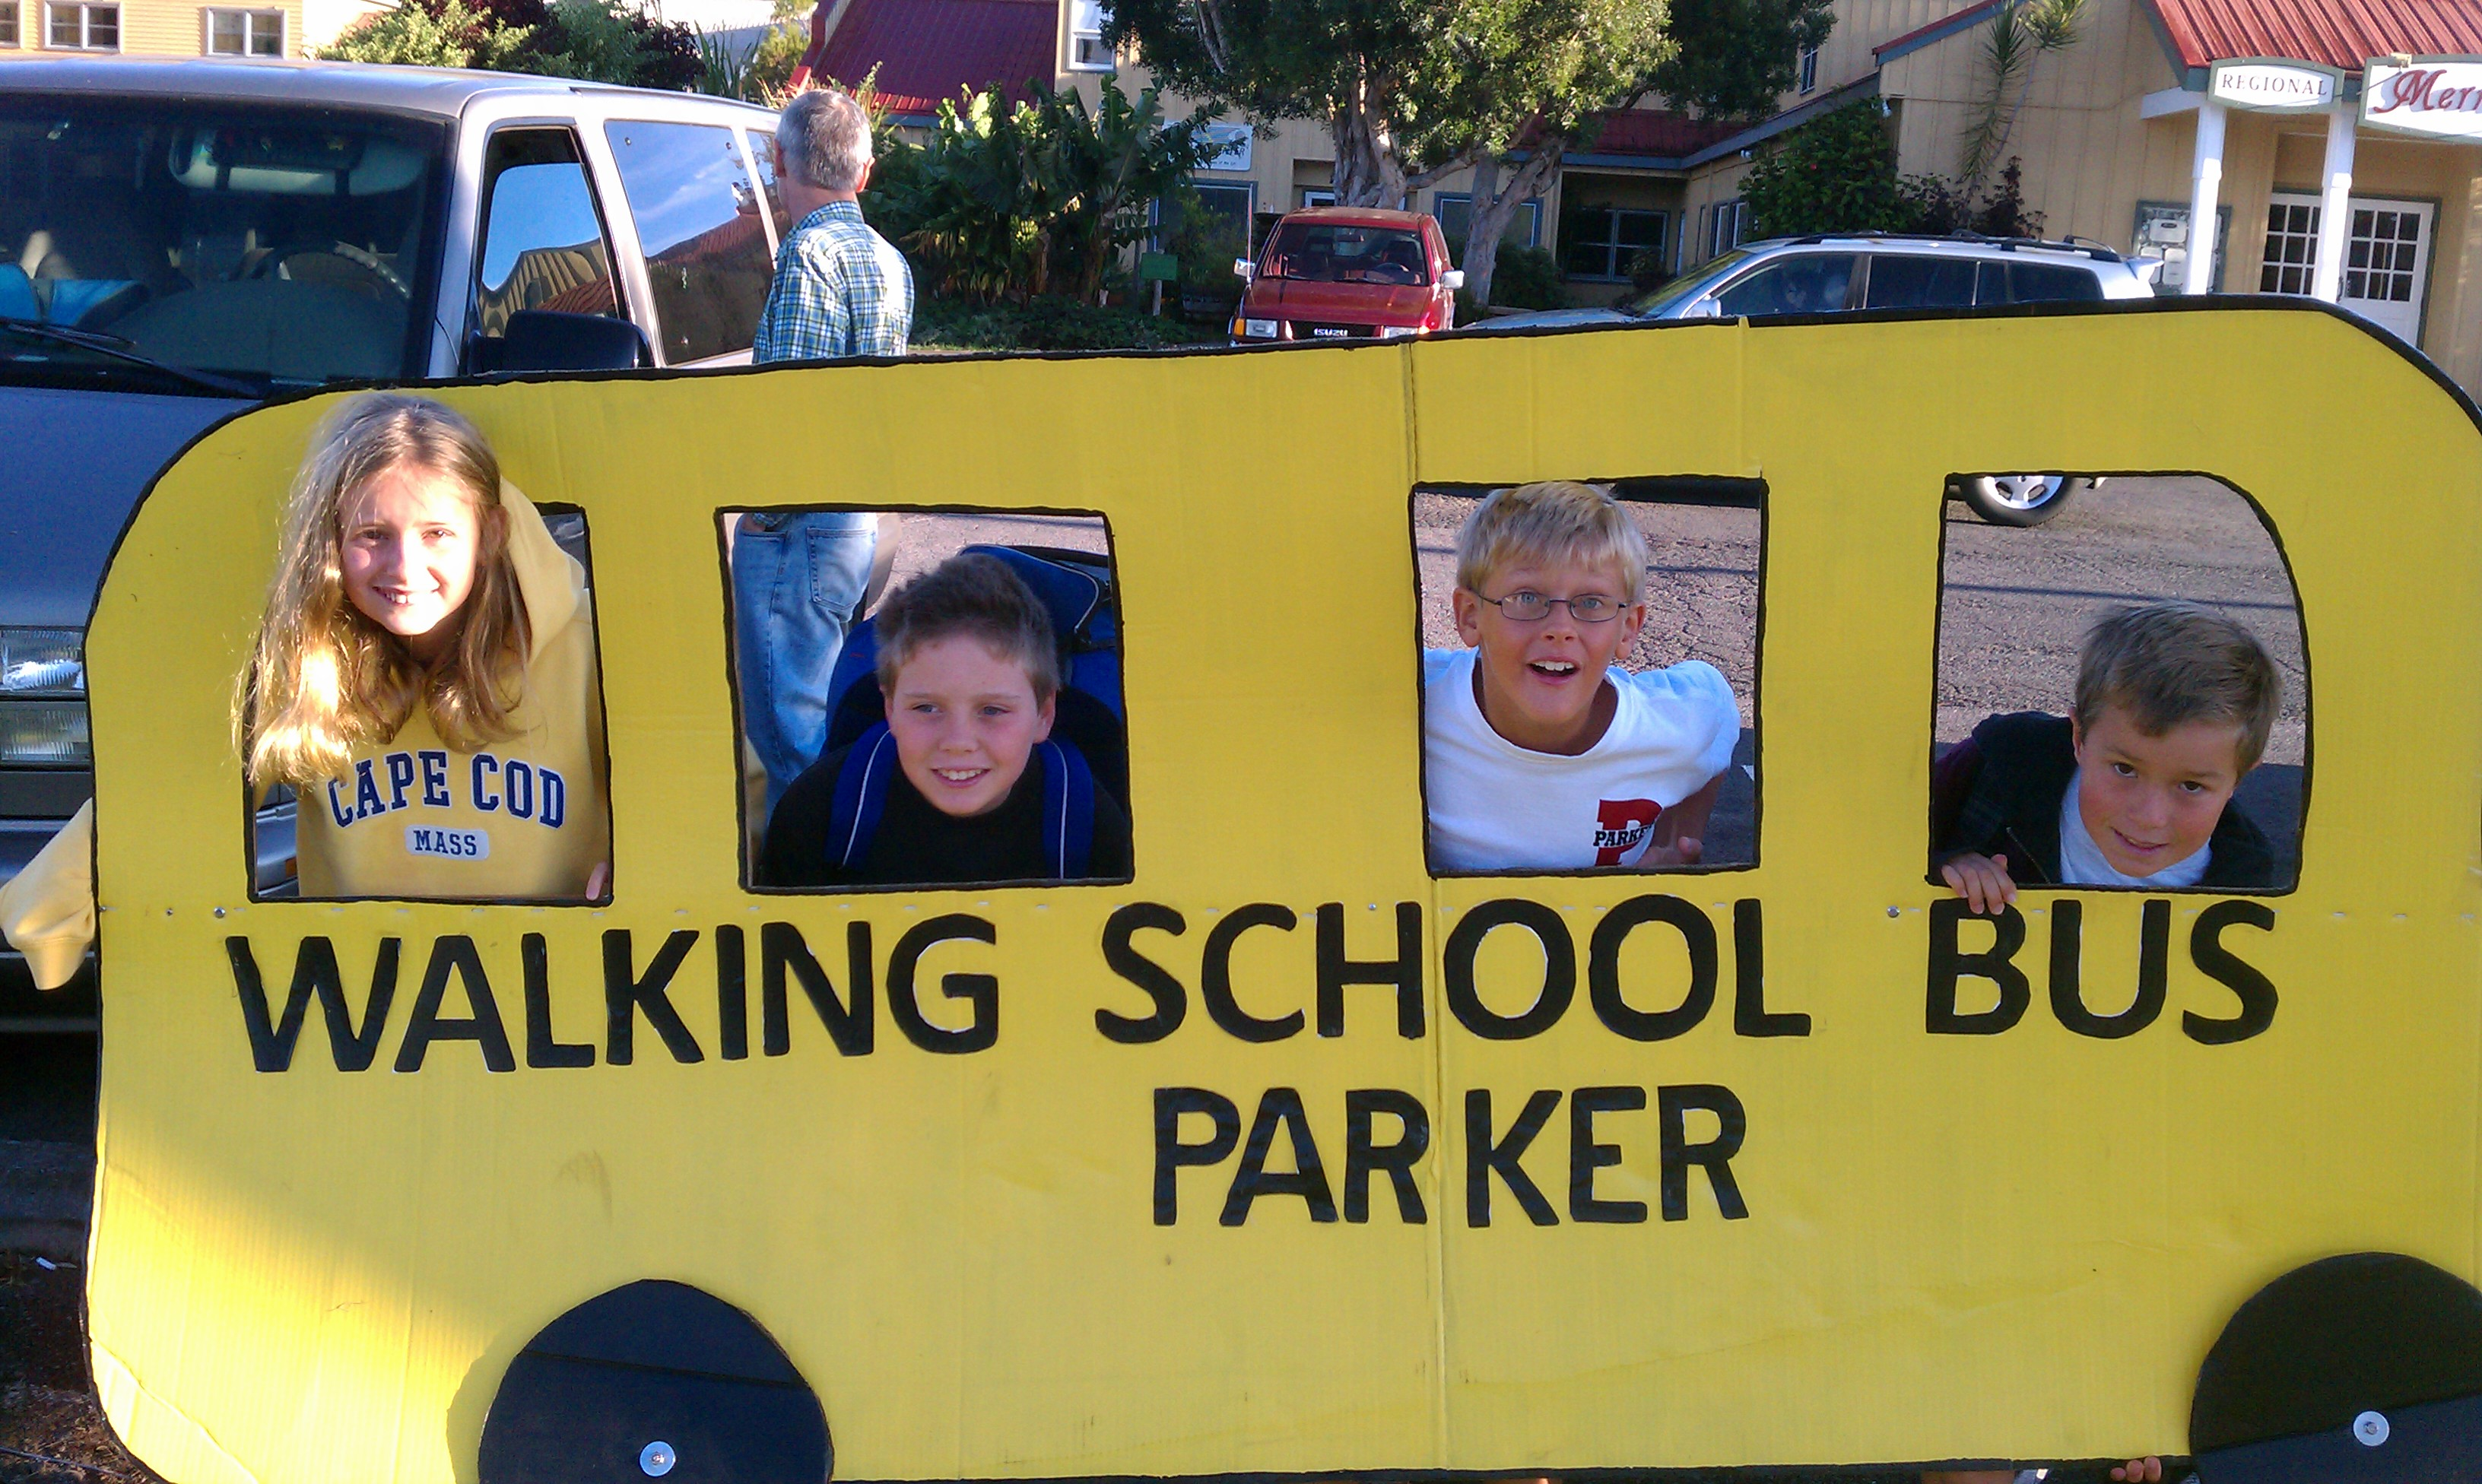 It was Healthy Routes to School Week in October for Parker Lower School. The event was launched by the school's Safe Routes to School program, which encourages families to try alternatives to driving to and from school throughout the school year.